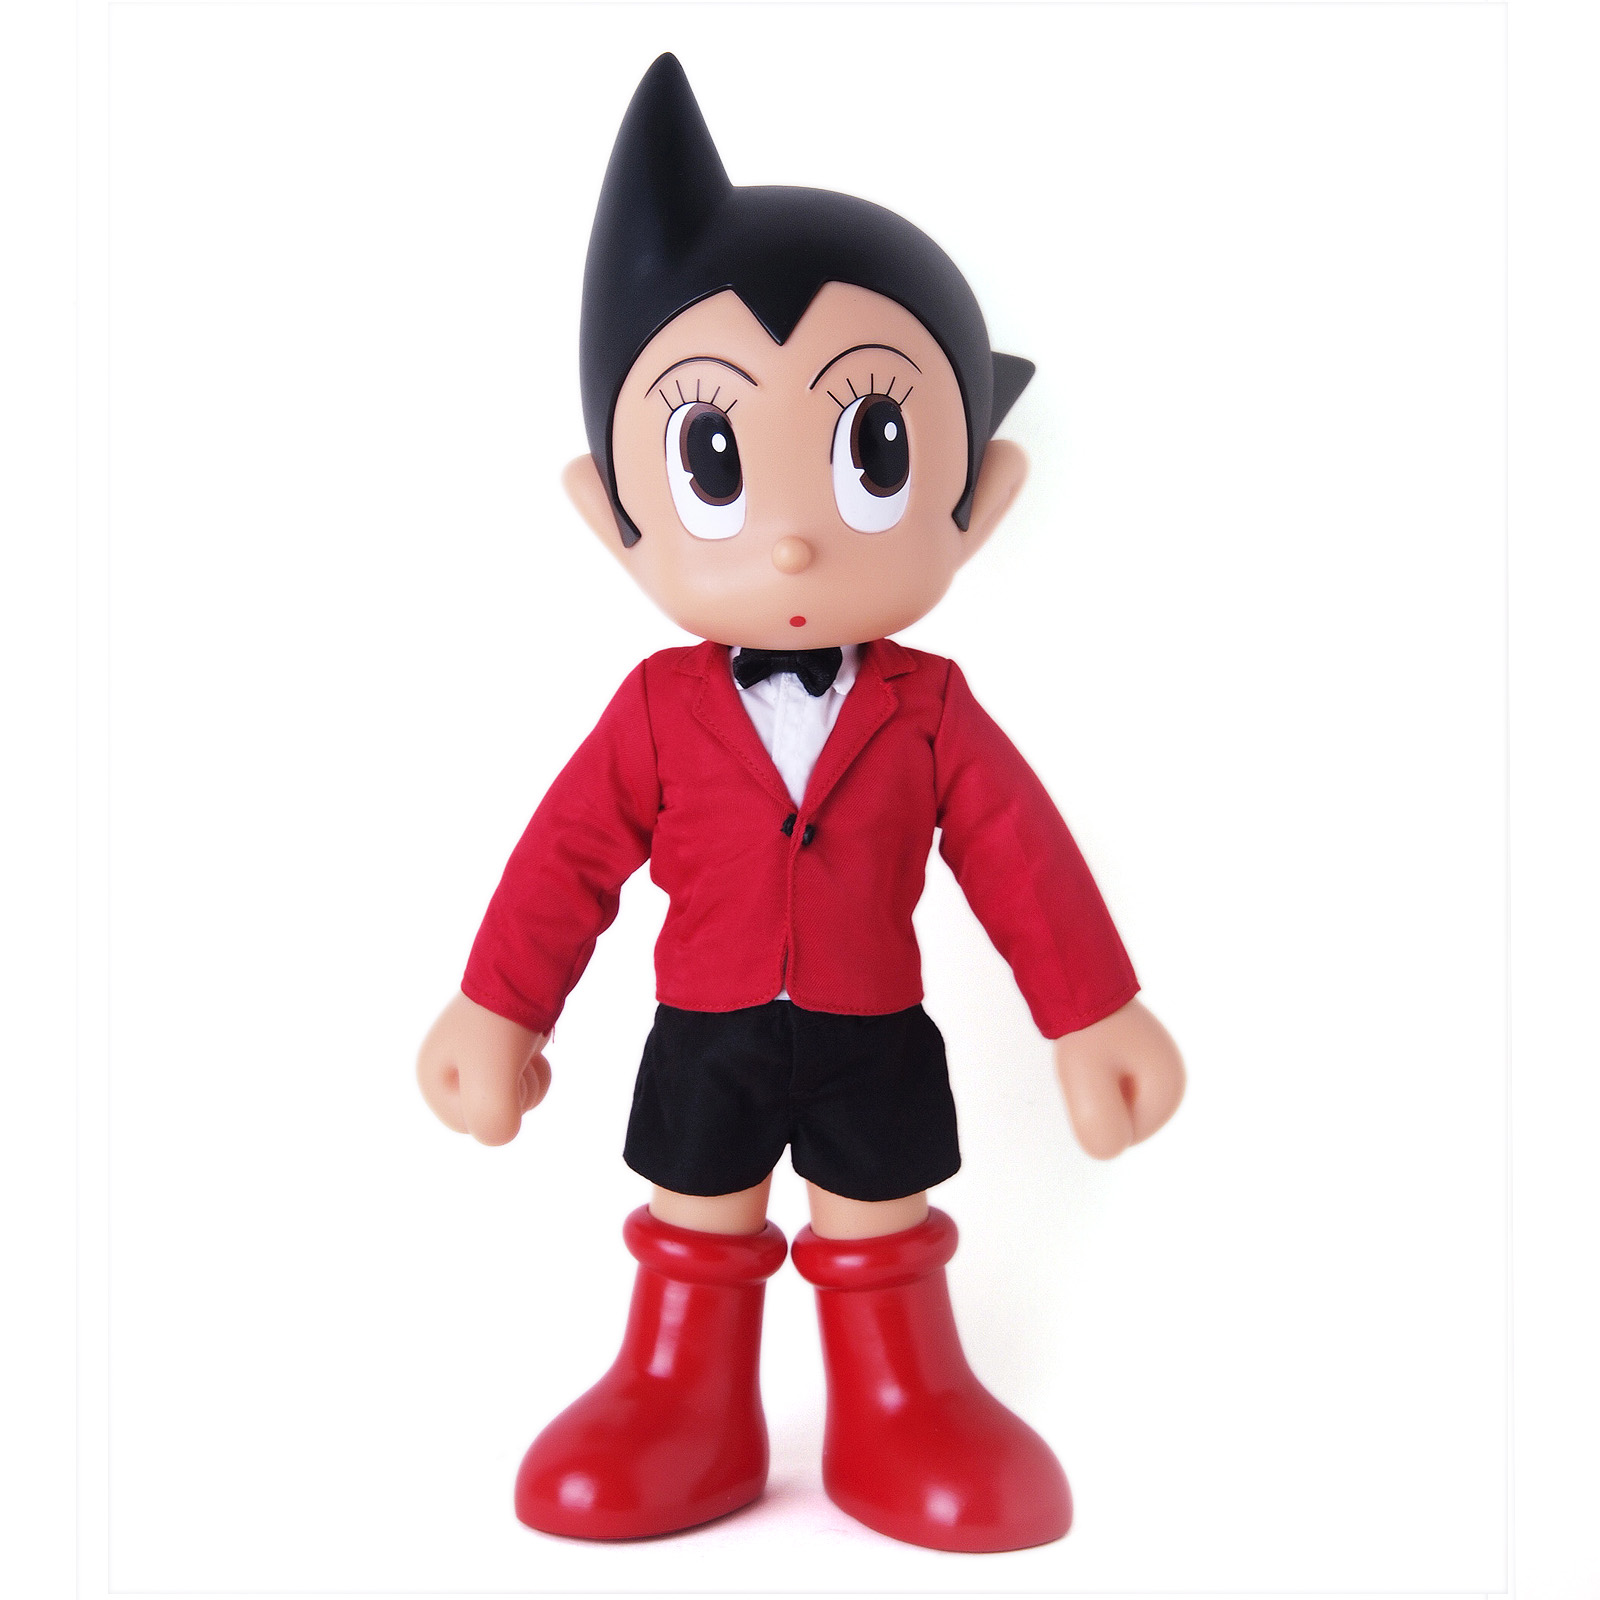 Toy Figures For Boys : Astro boy action figures hot toys vinyl collectables